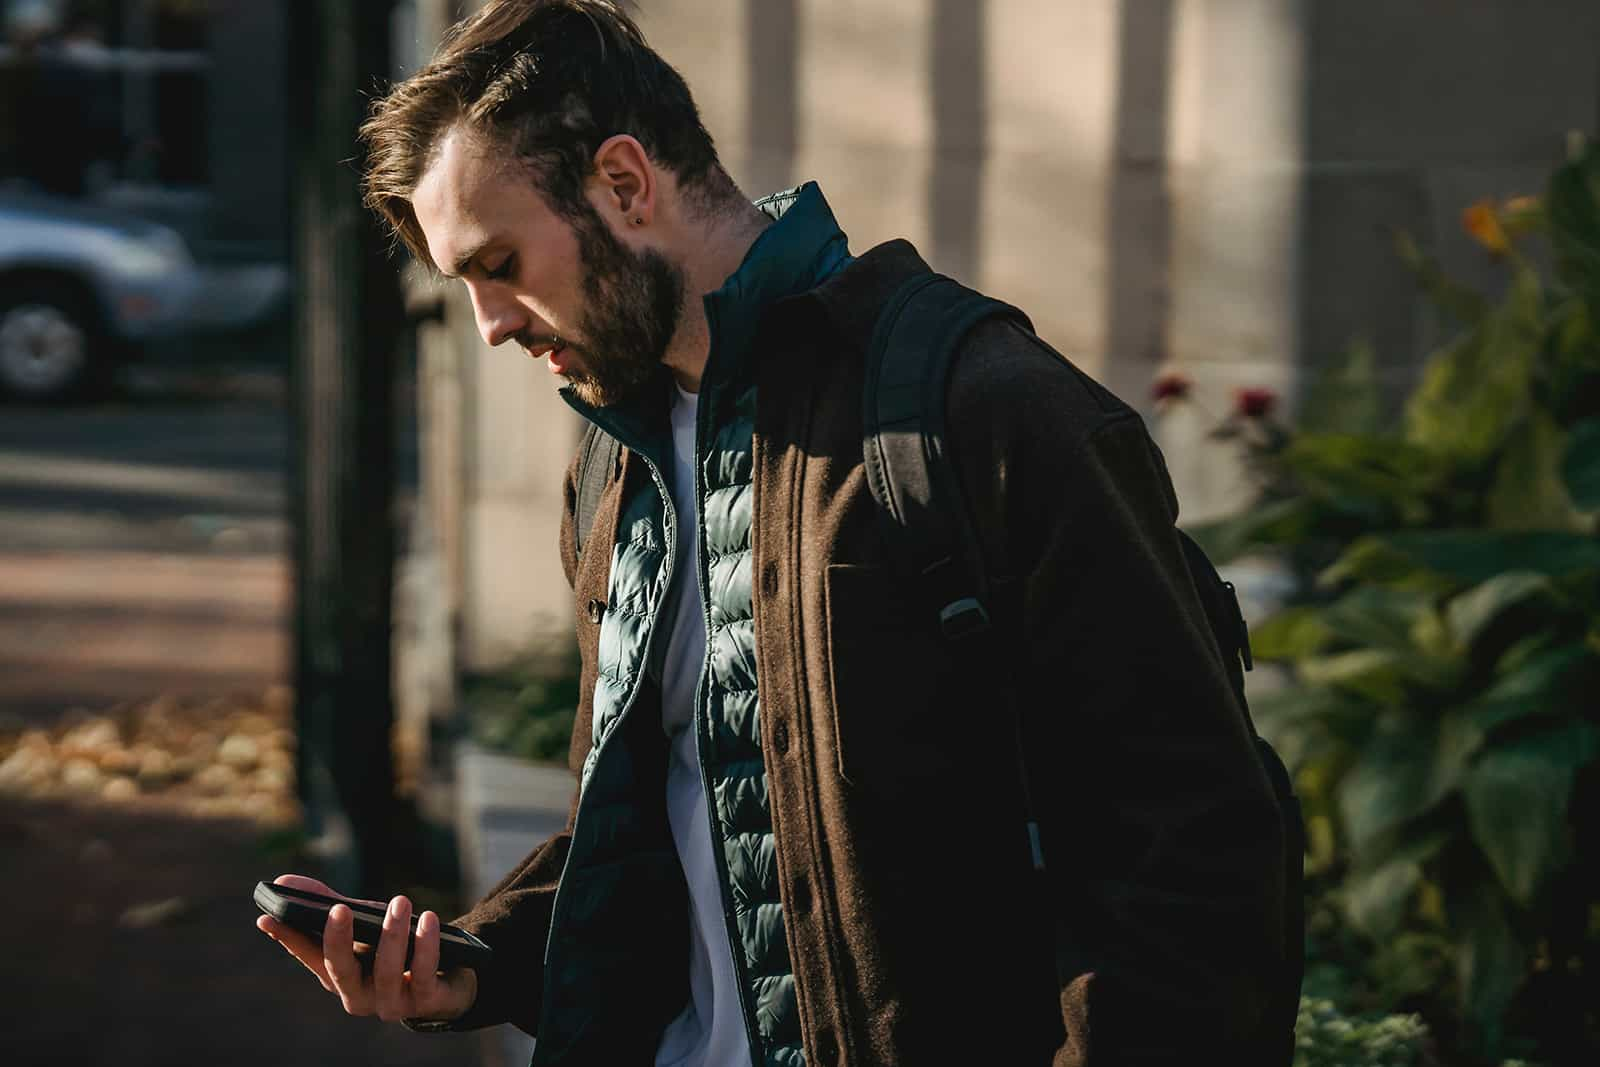 man looking at smartphone while standing outdoor alone